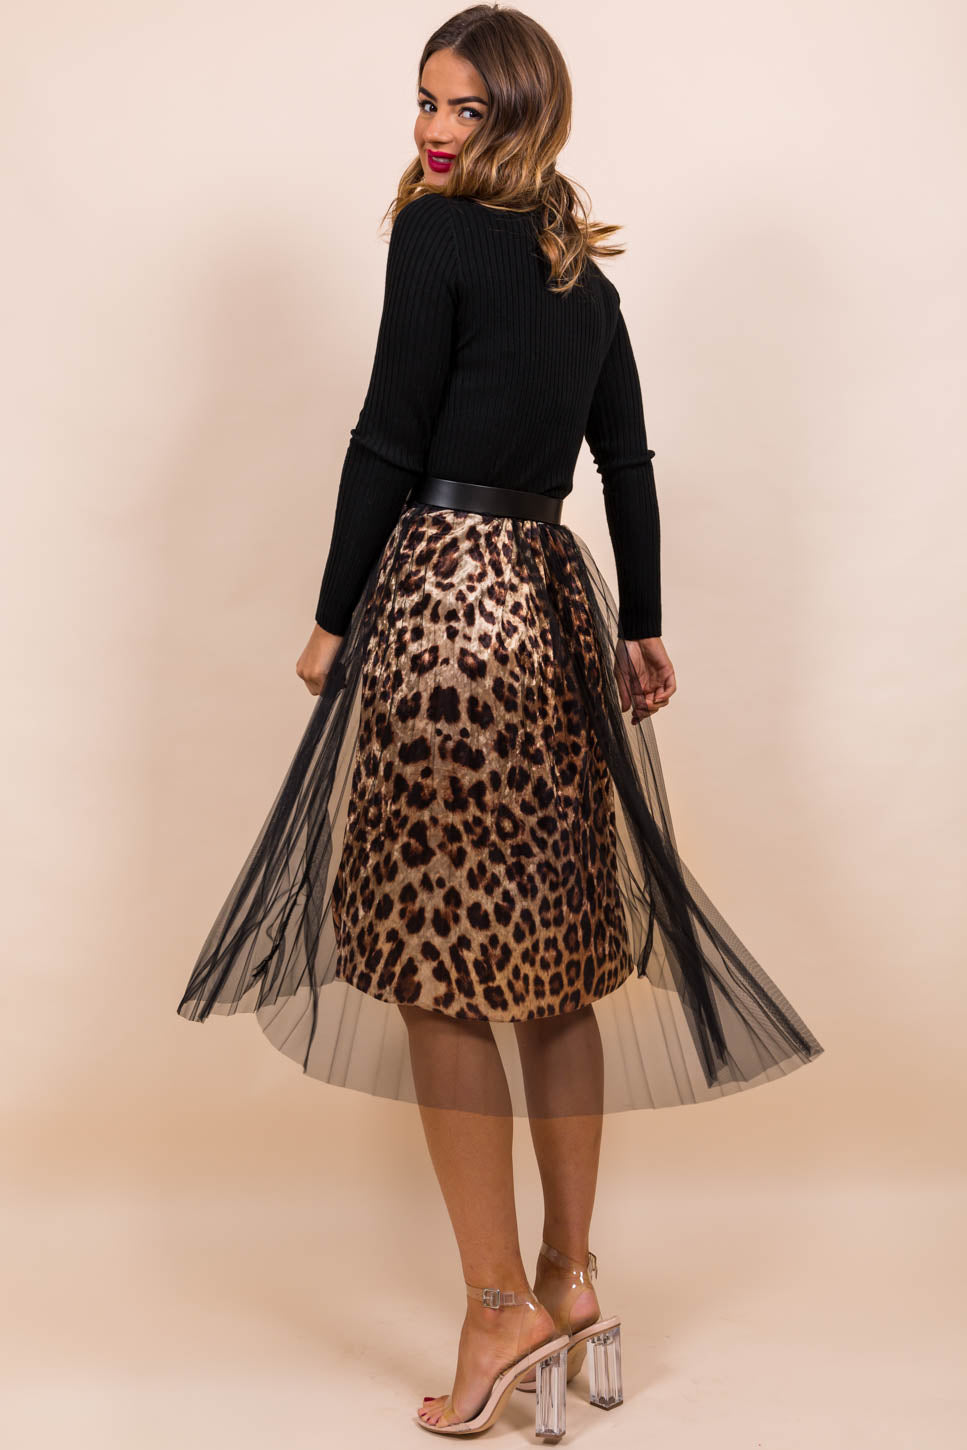 Catch Meowt - Midi Skirt In LEOPARD/BLACK